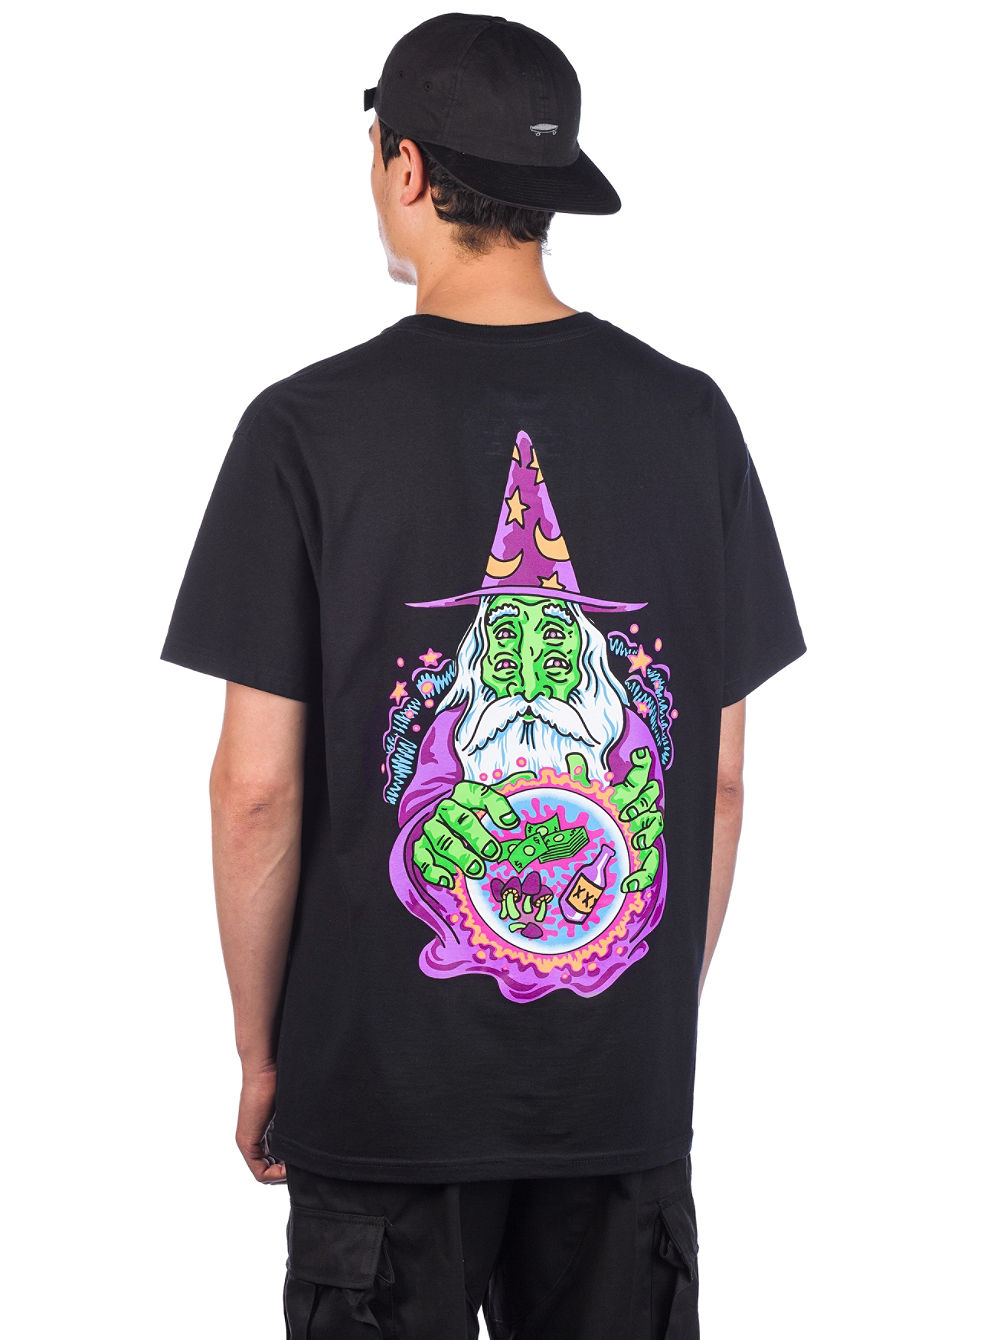 Alab Wiz T-Shirt